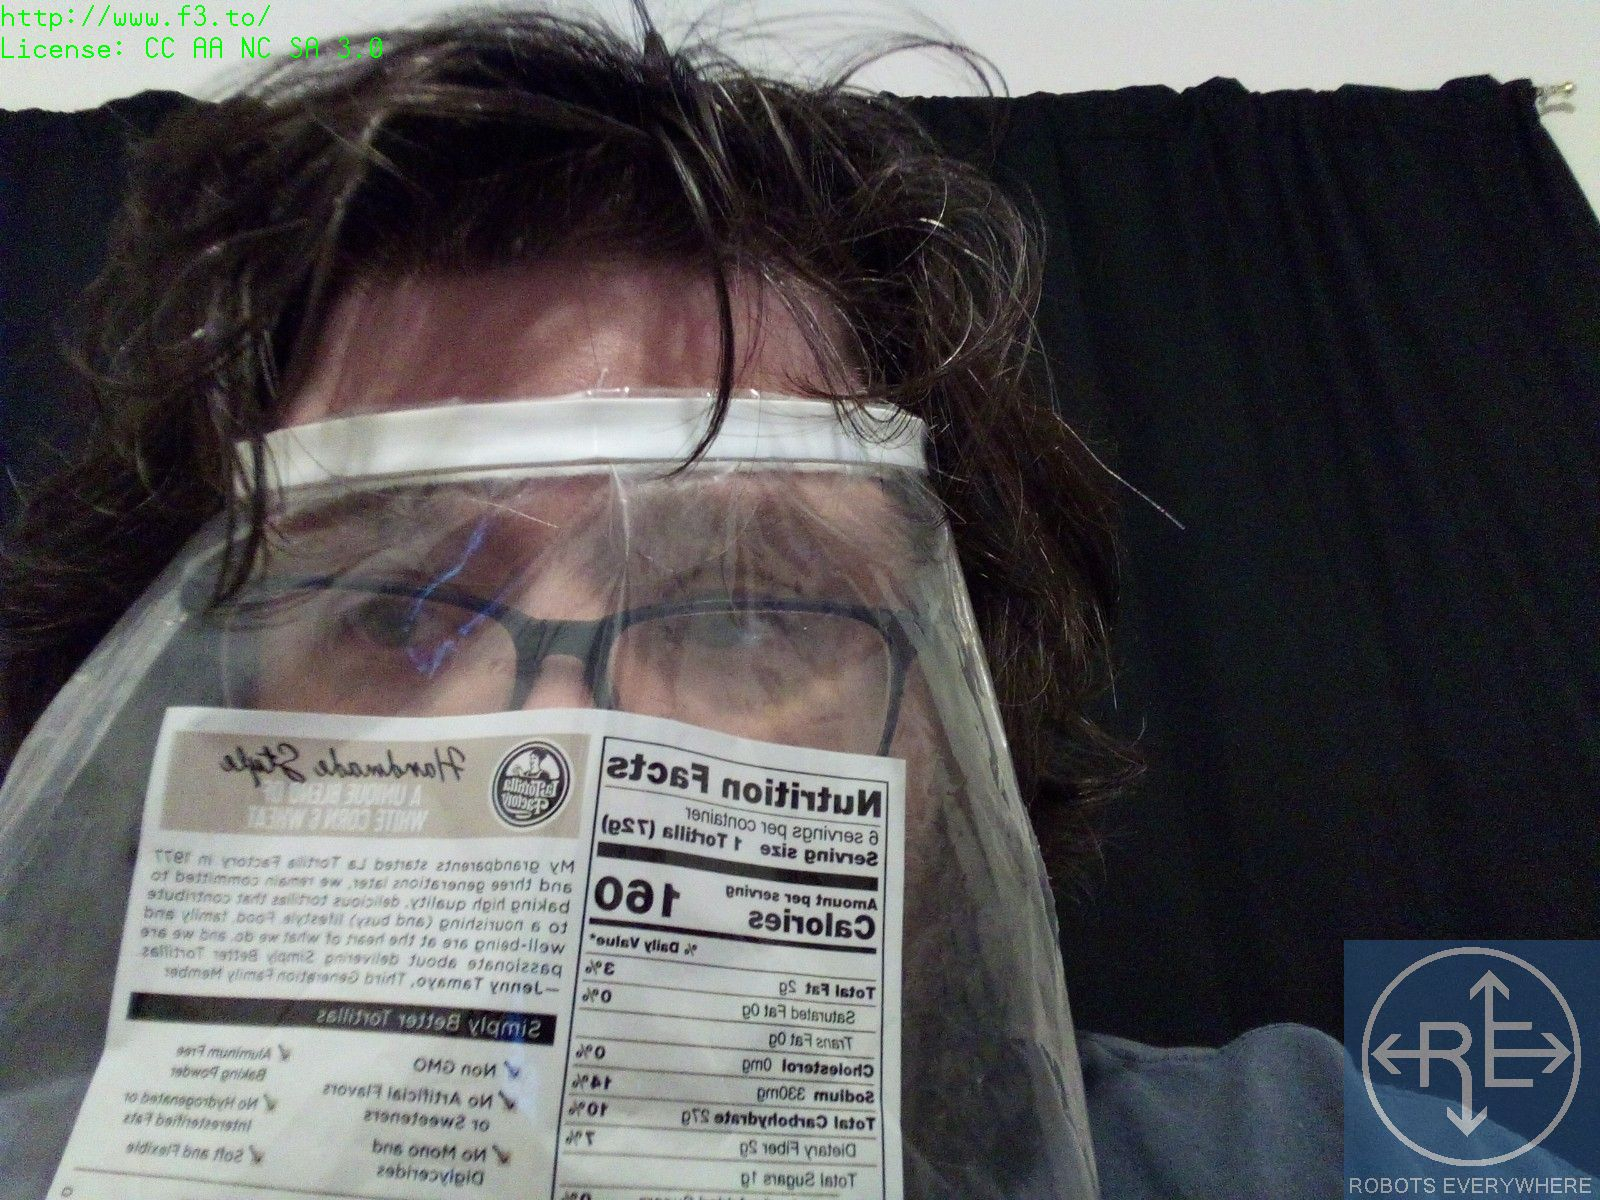 Matteo Borri, Founder of Robots Everywhere in a Bread Bag Face Shield